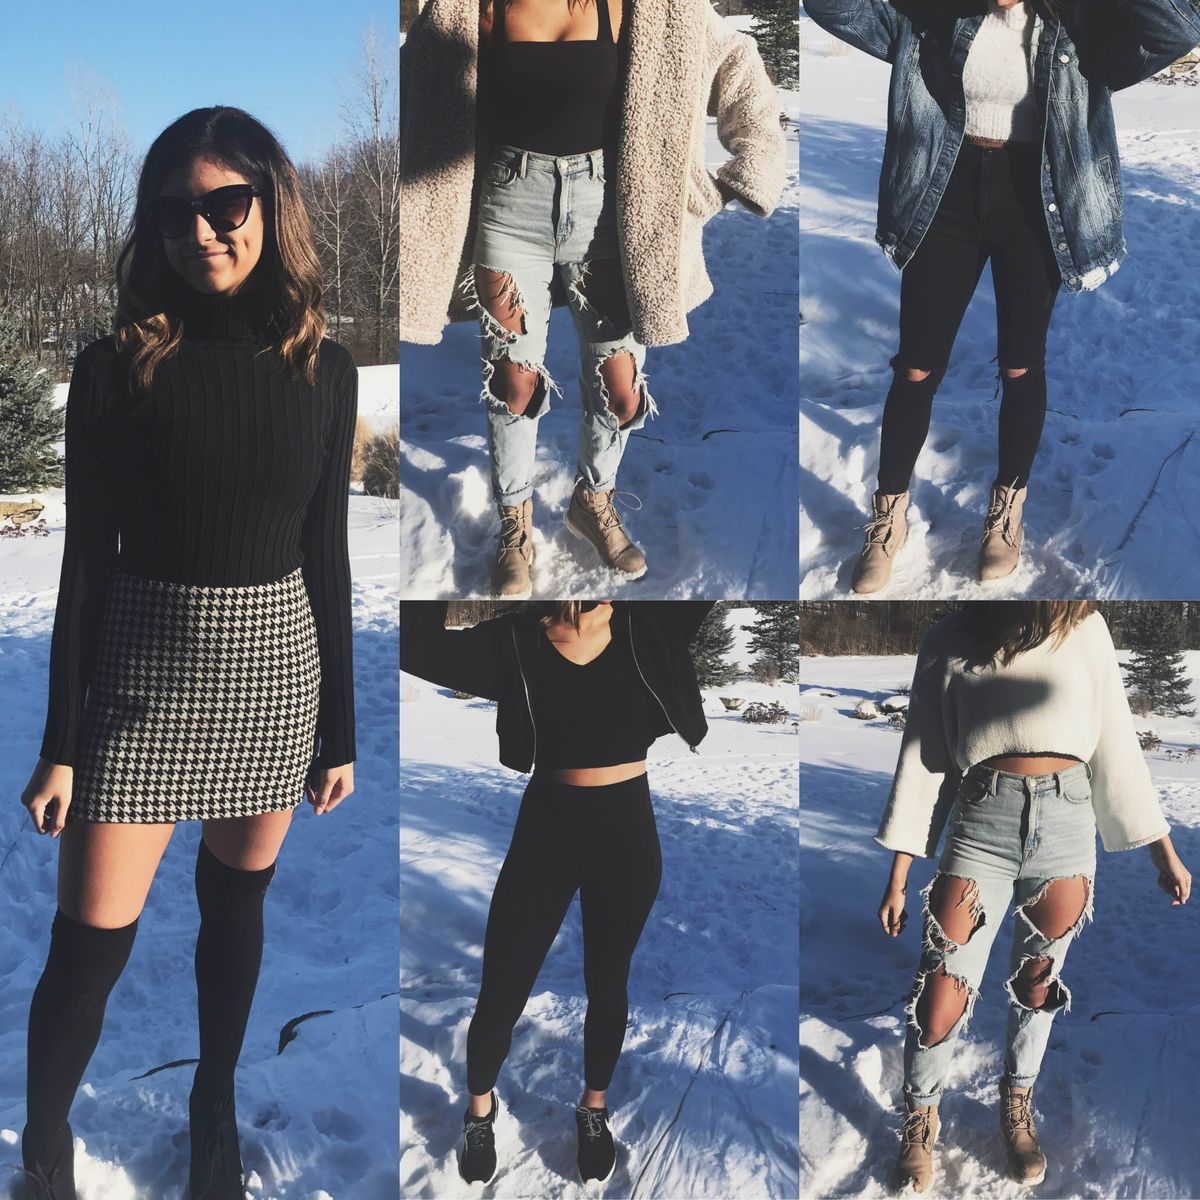 5 Fashion Staples Girls Need For When It's 32 Degrees Or Less